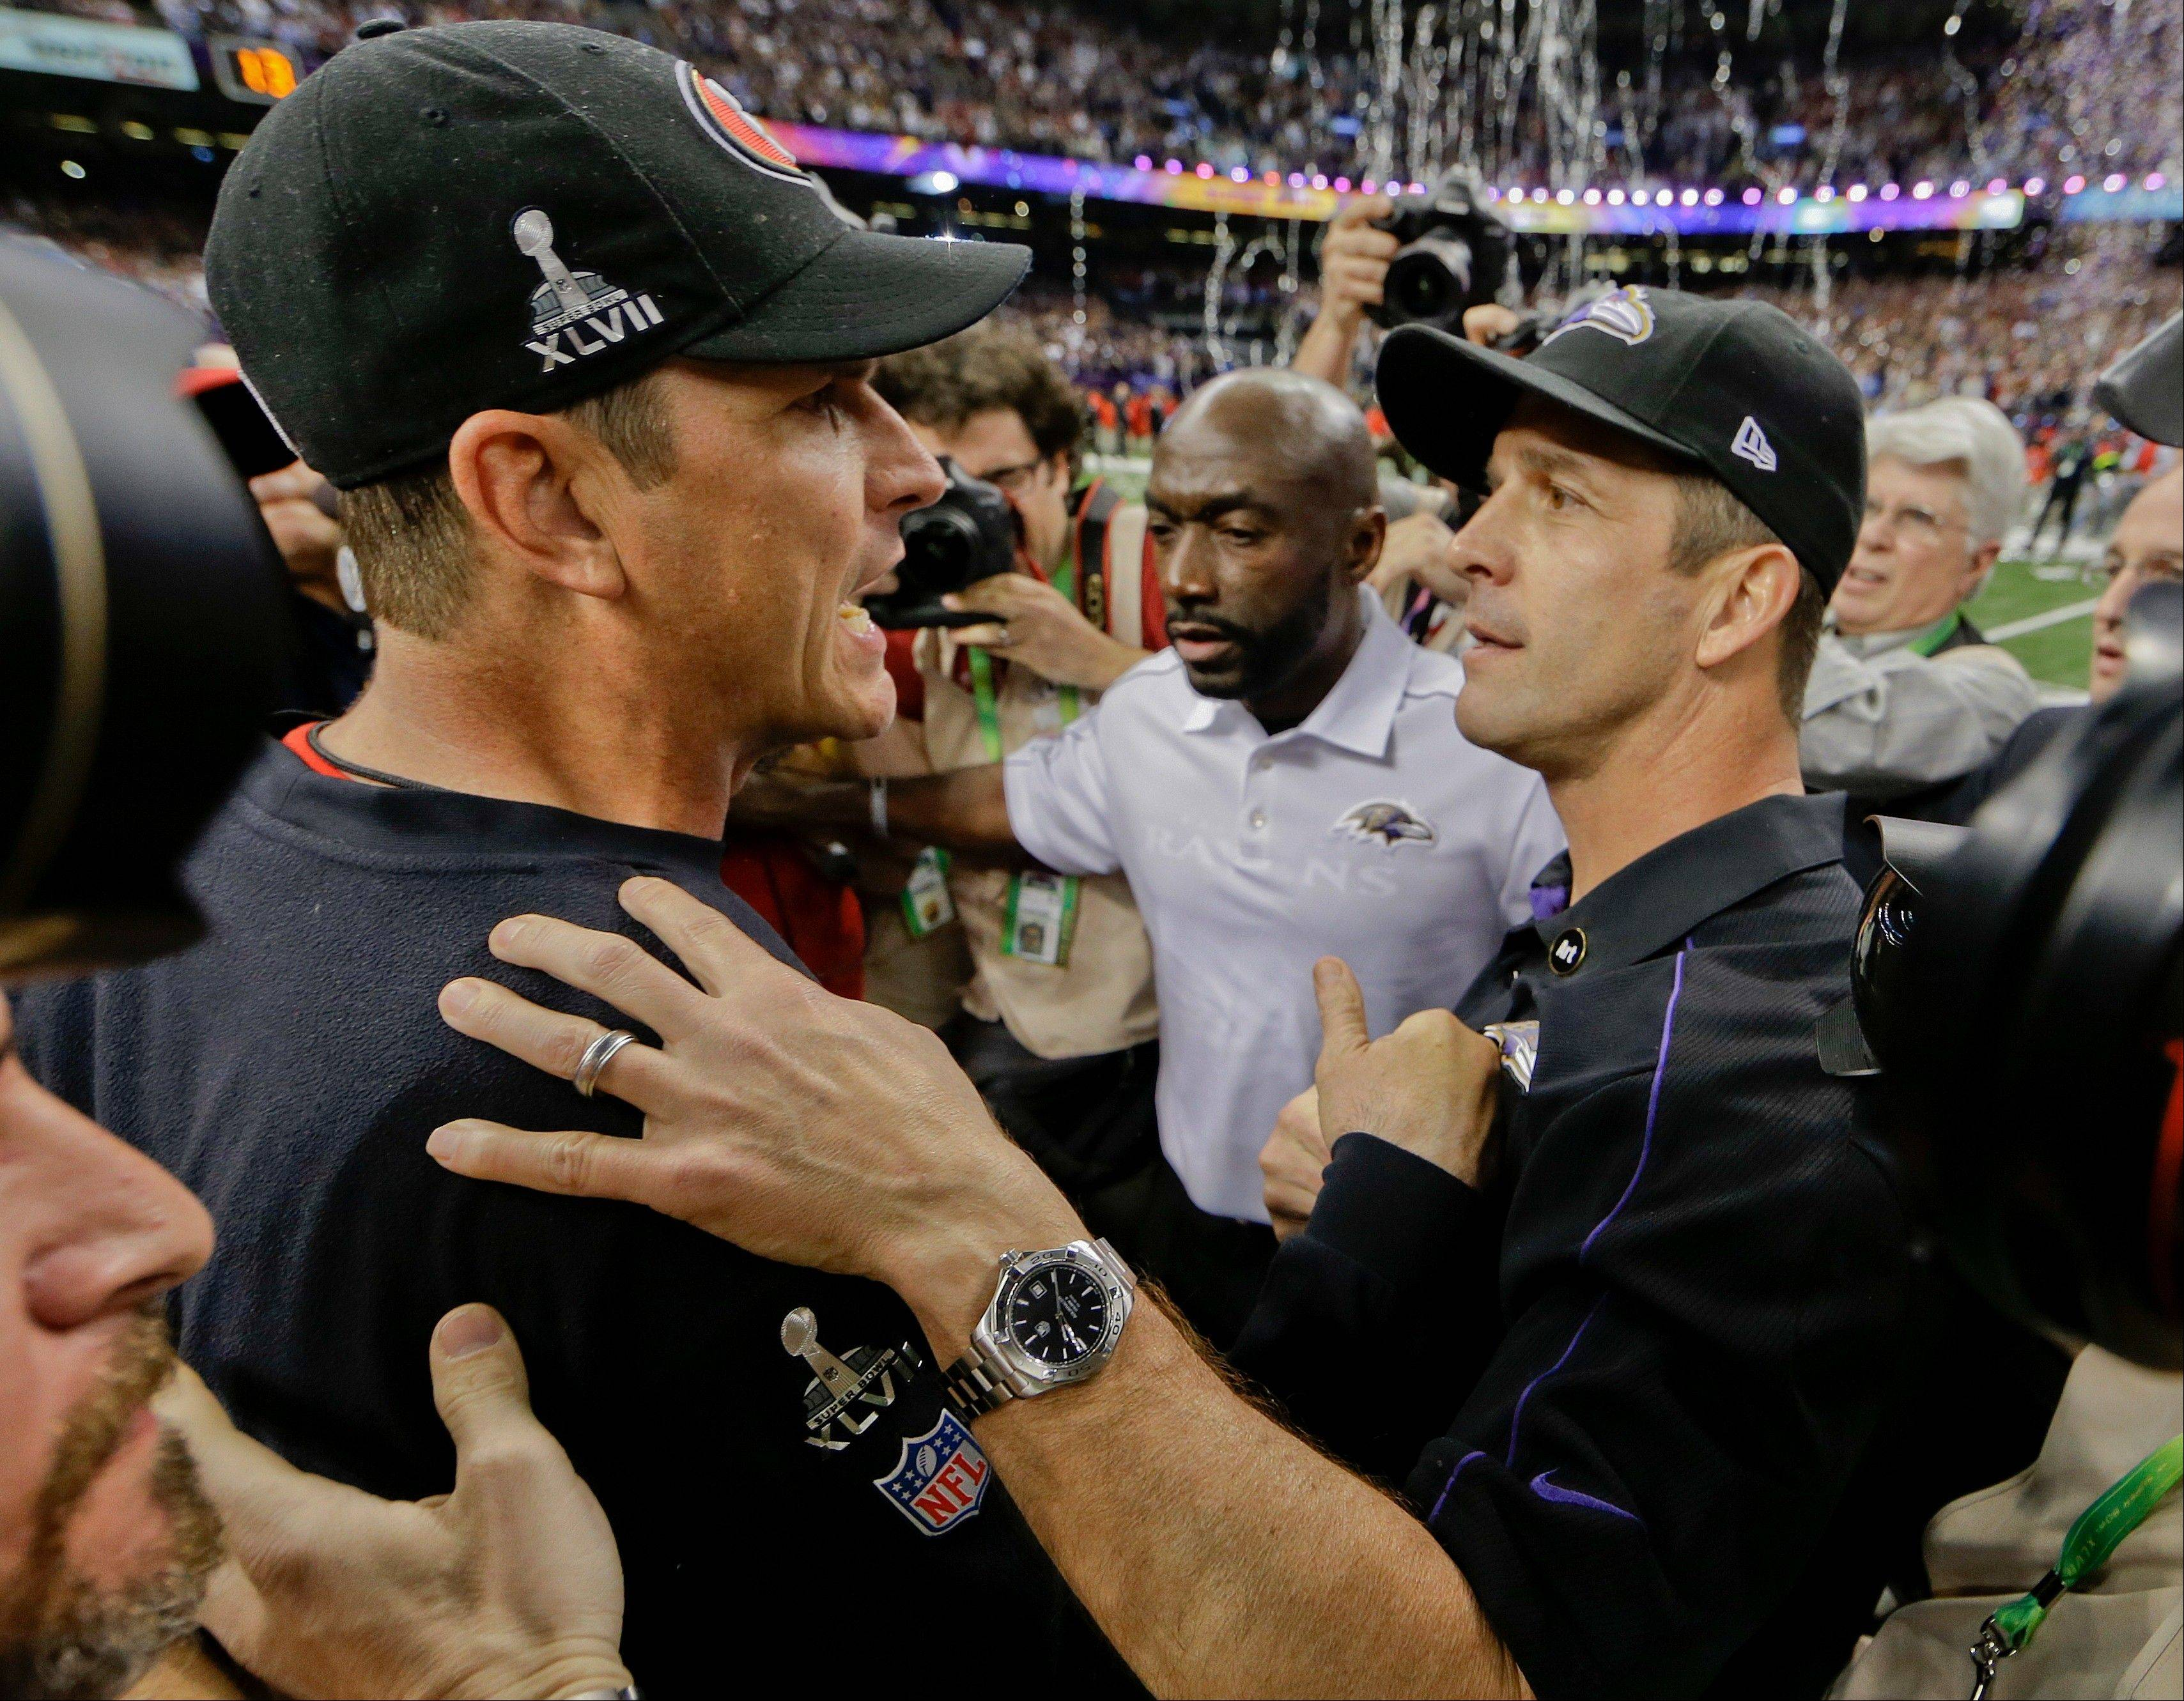 San Francisco 49ers head coach Jim Harbaugh, left, greets his brother, Baltimore Ravens head coach John Harbaugh, on Sunday after the Ravens defeated the 49ers 34-31 in the Super Bowl.